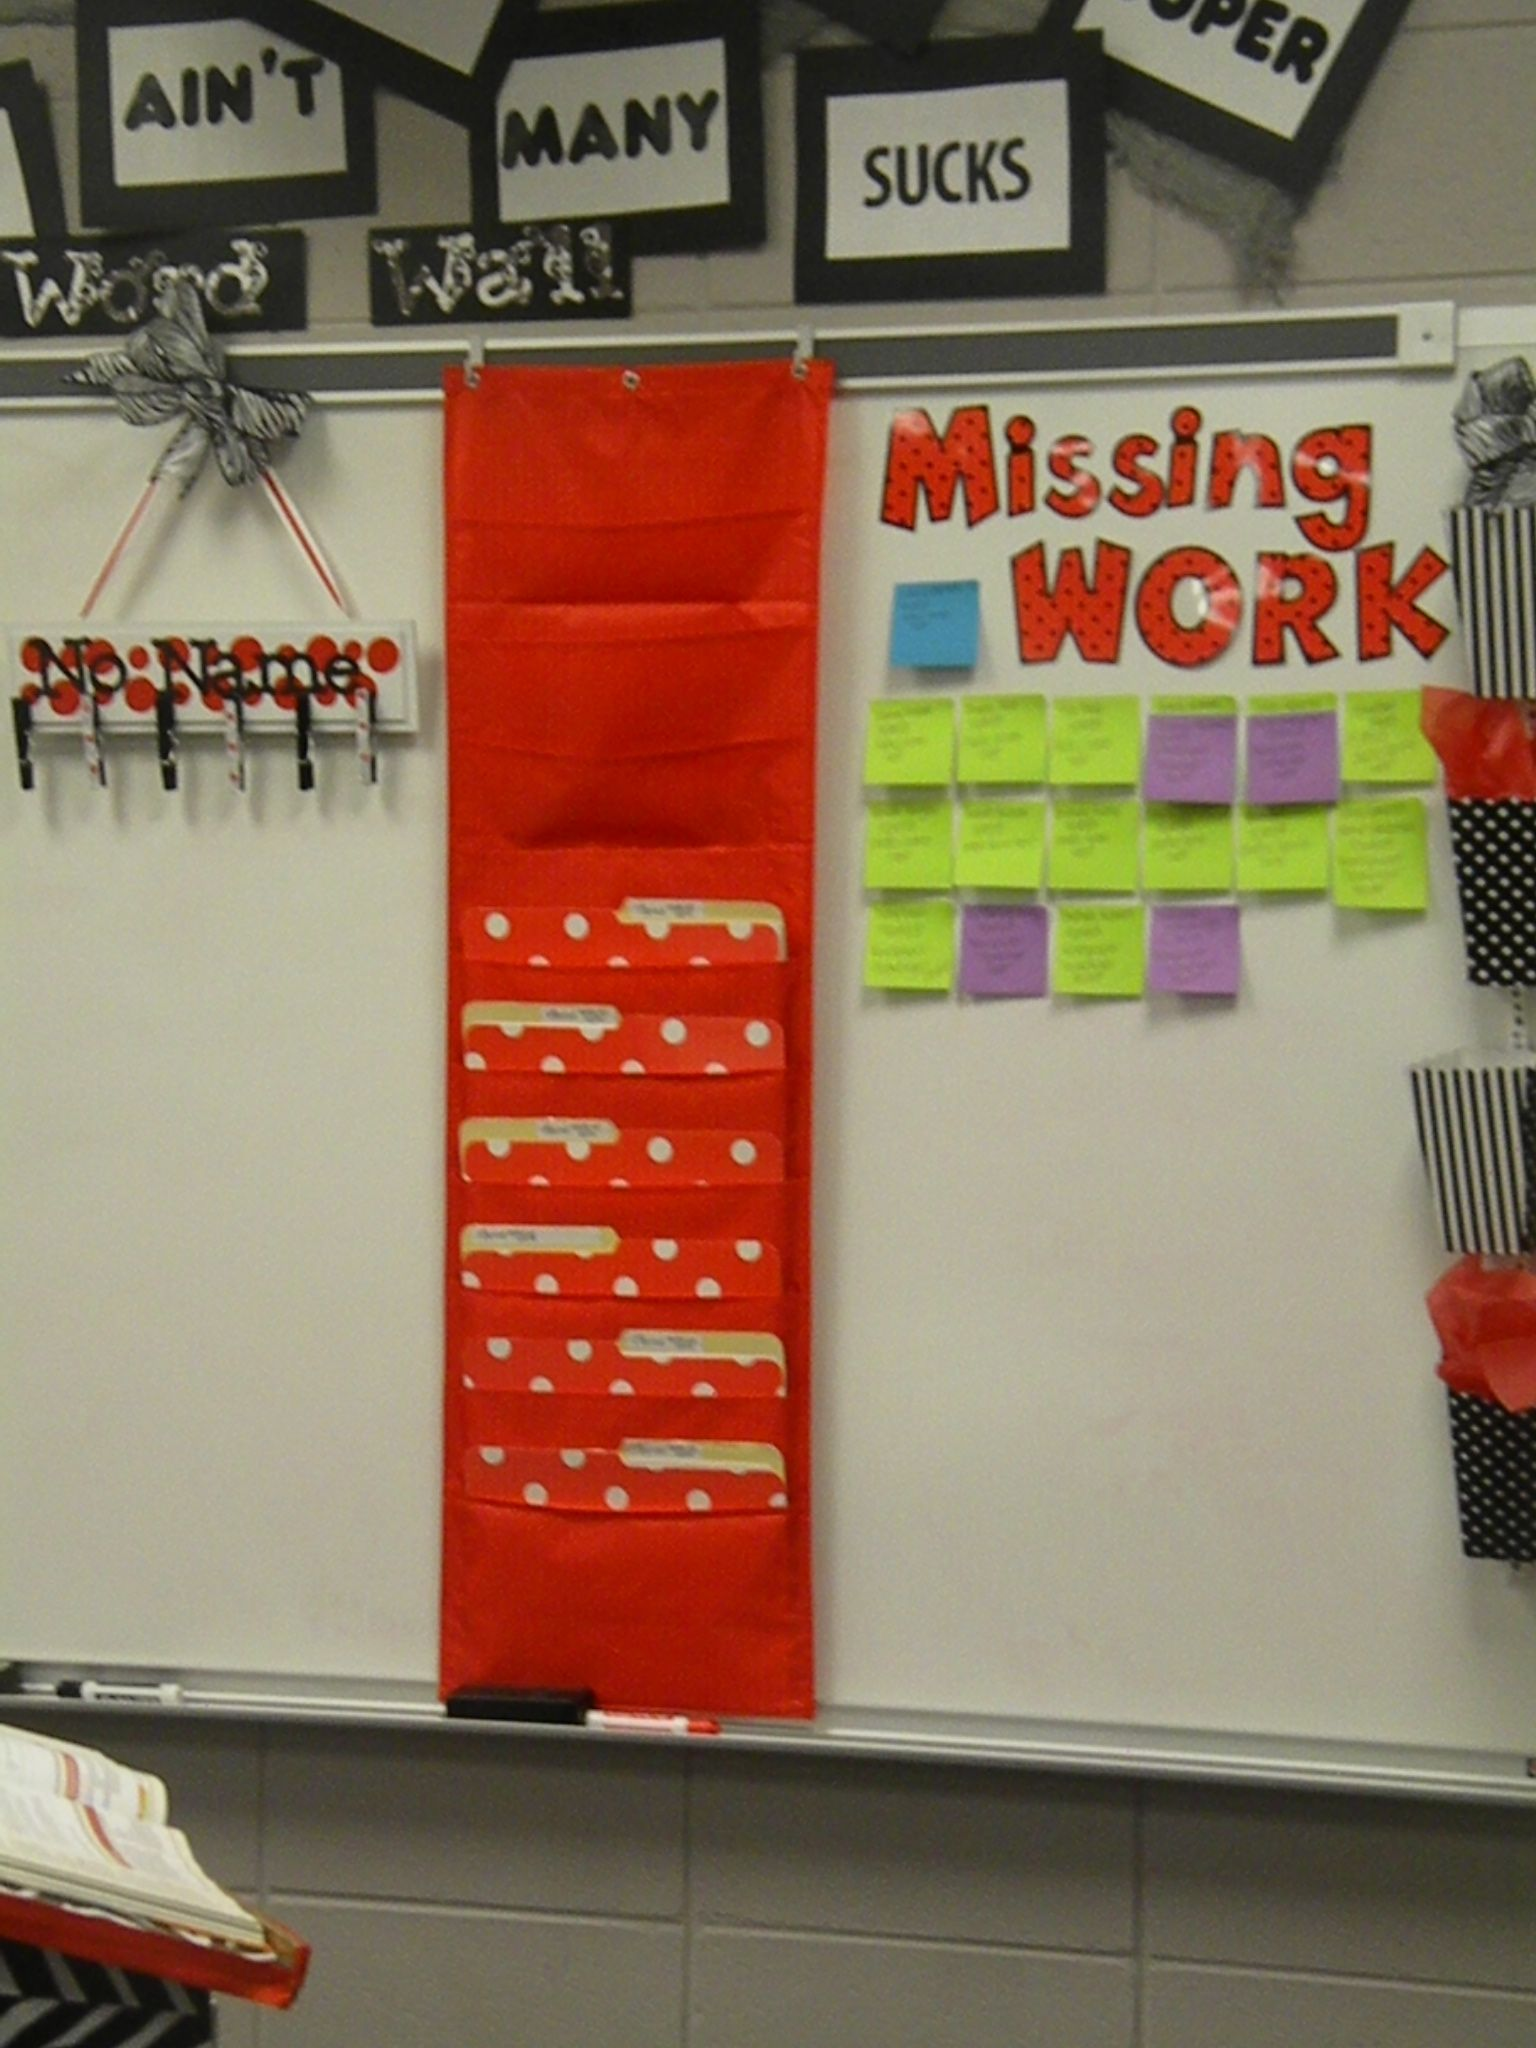 I Have Now Added A File Organizer Beside My Missing Work Board To Keep Copies Of Worksheets And